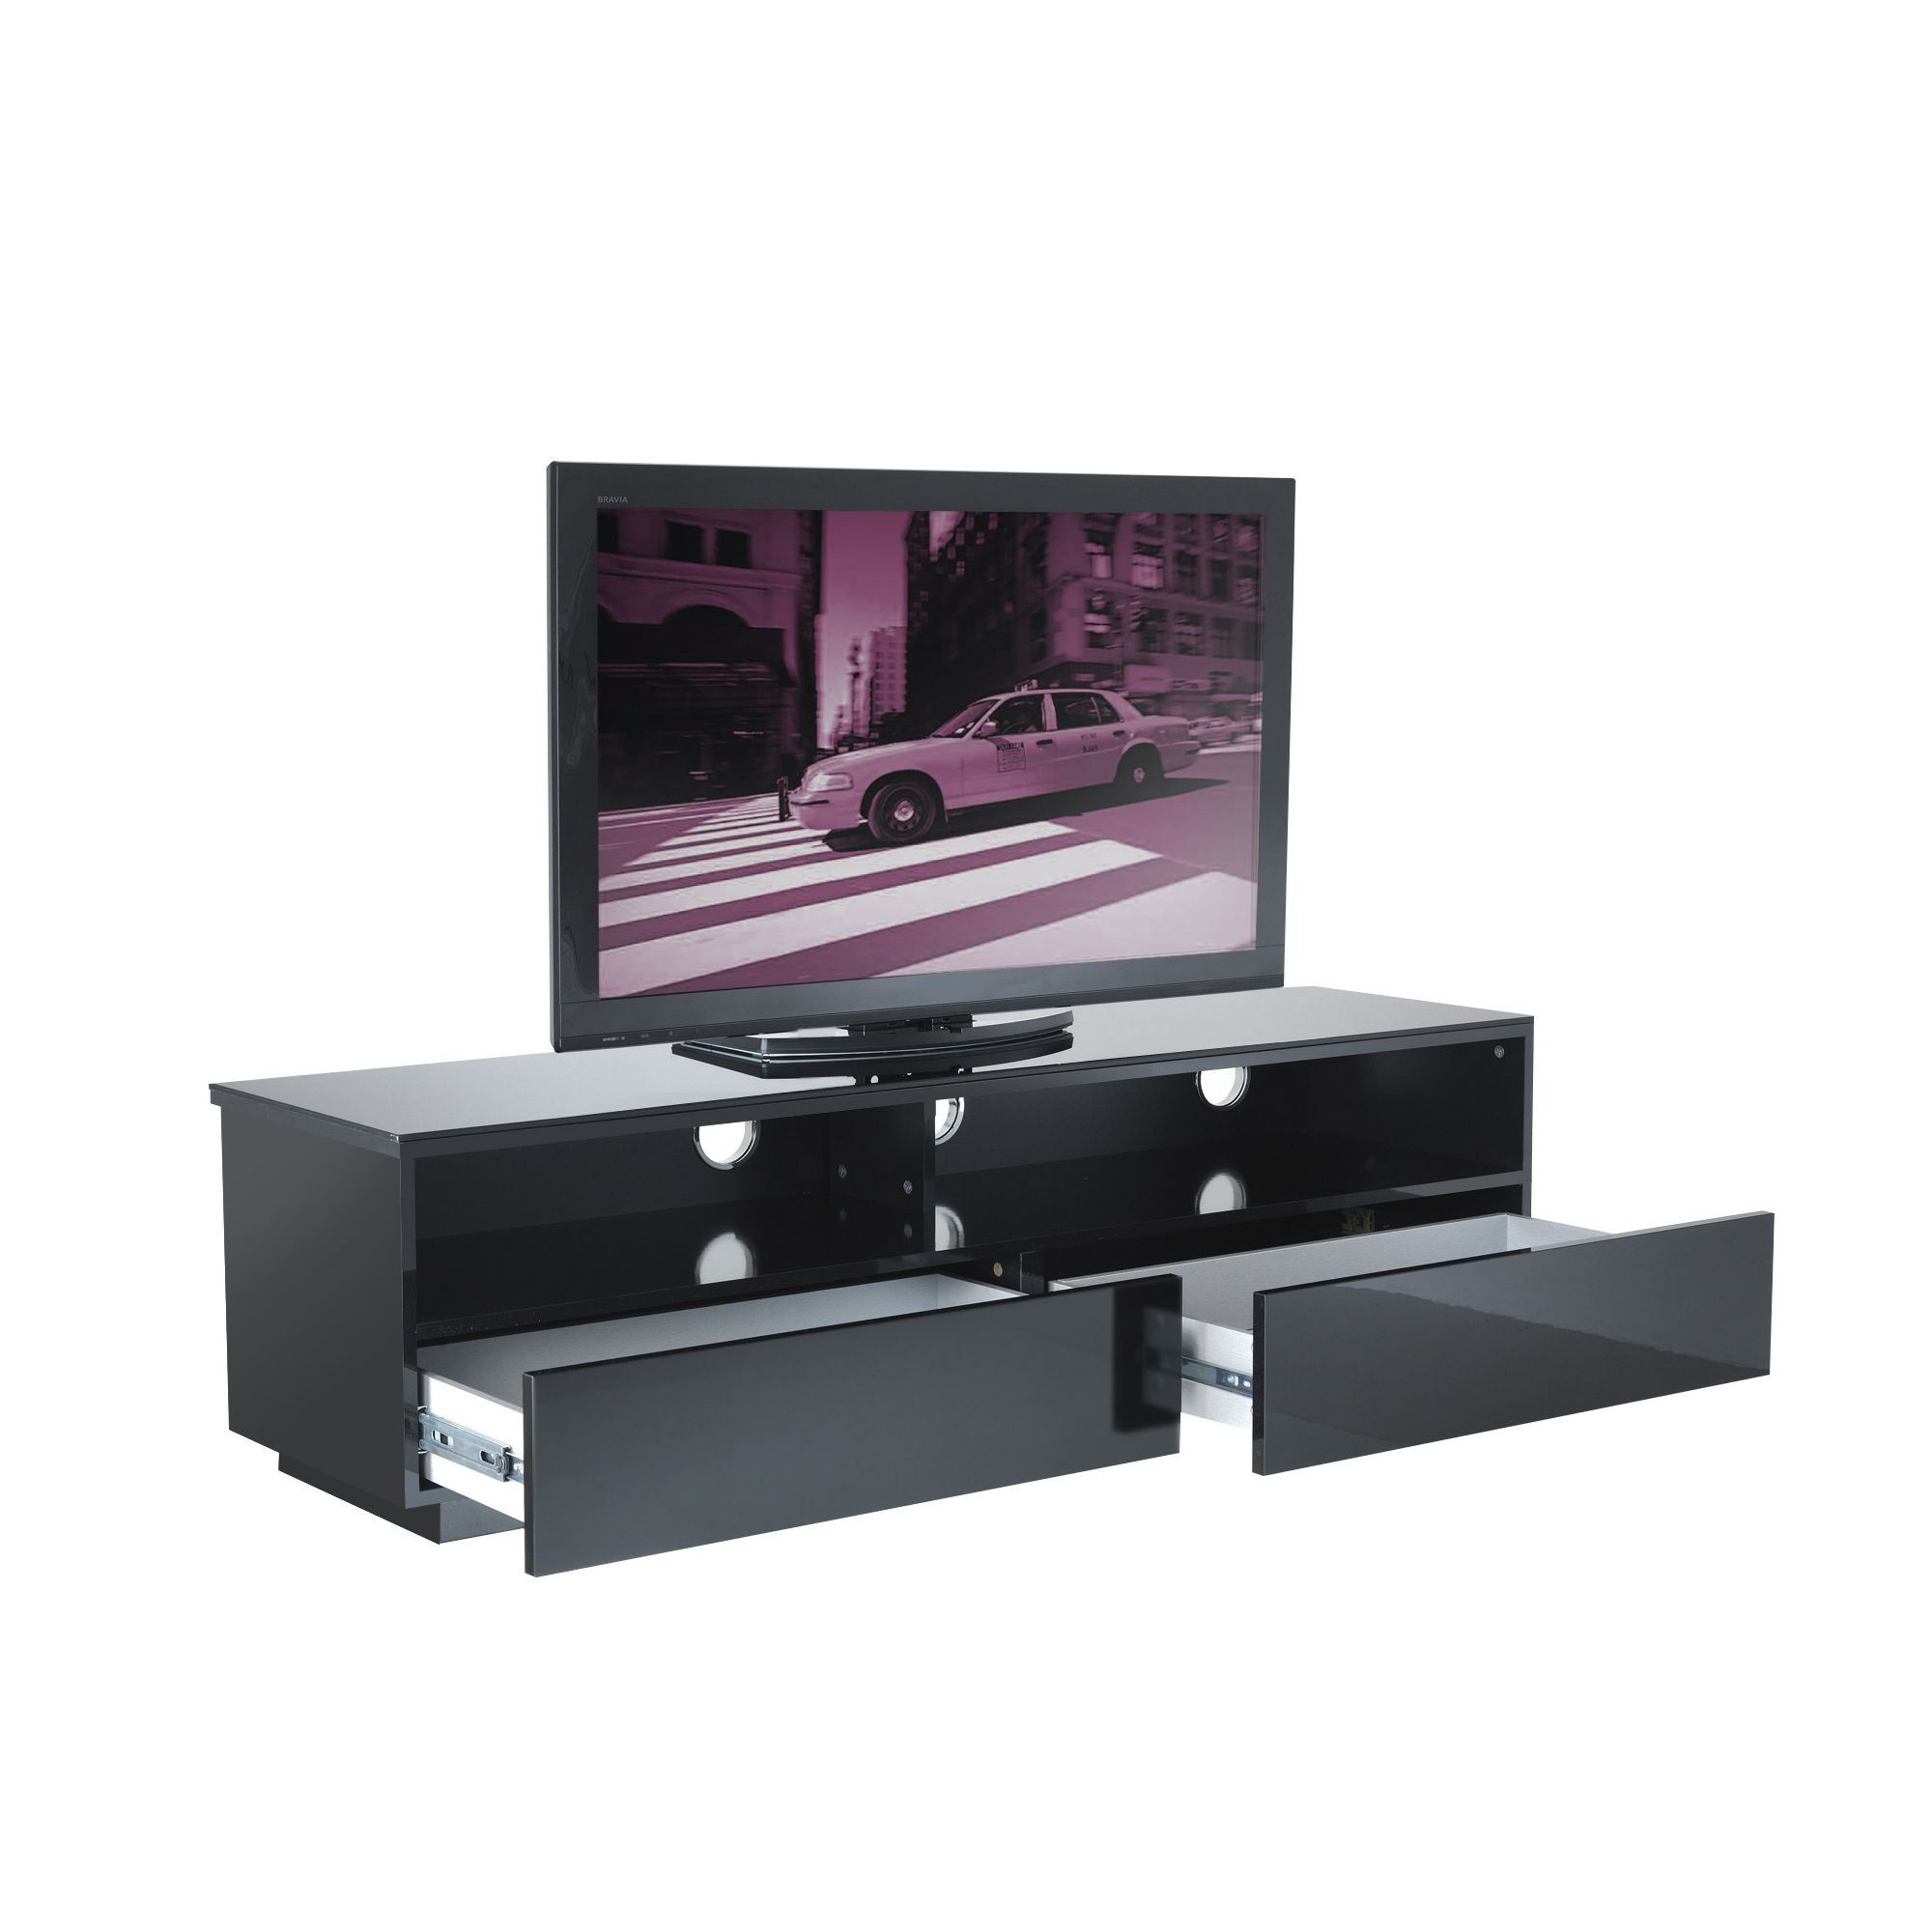 UK-CF Cityscape New York TV Stand - Black at Tesco Direct